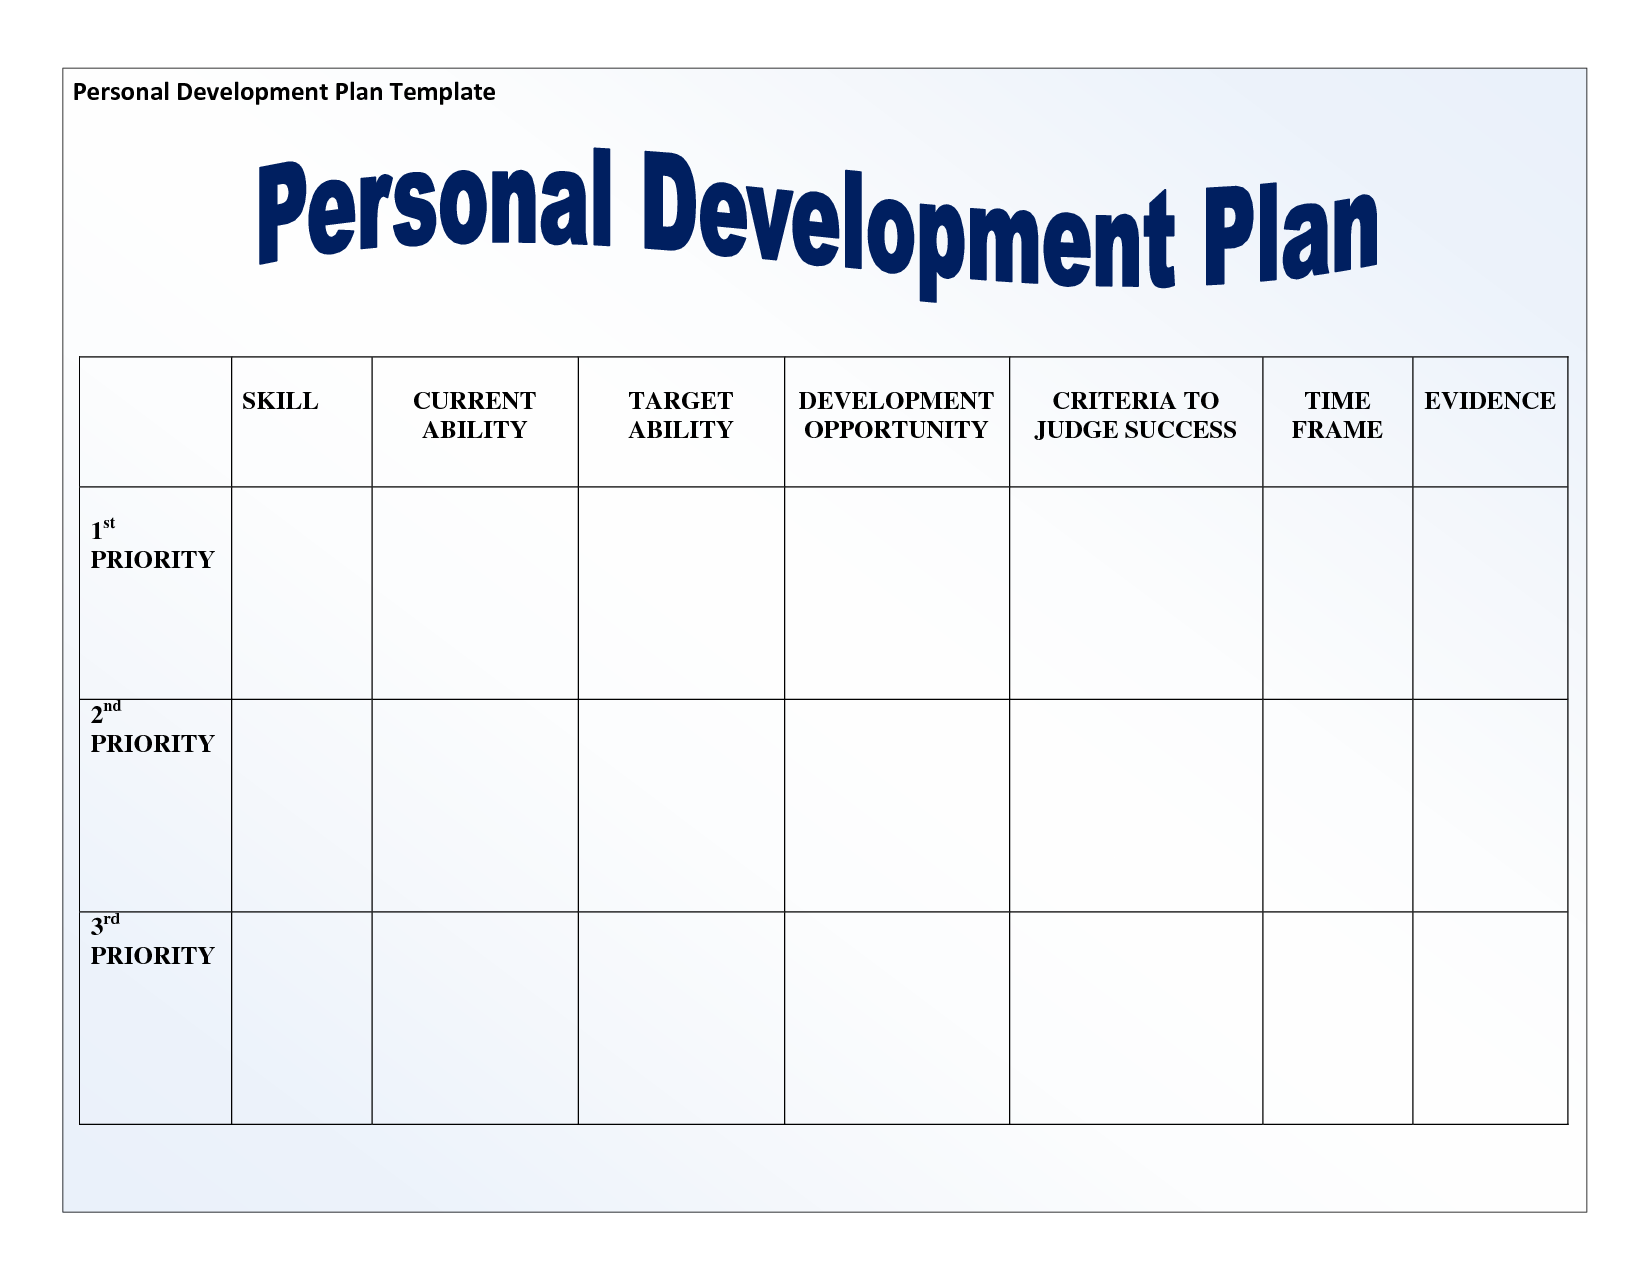 Personal Development Images